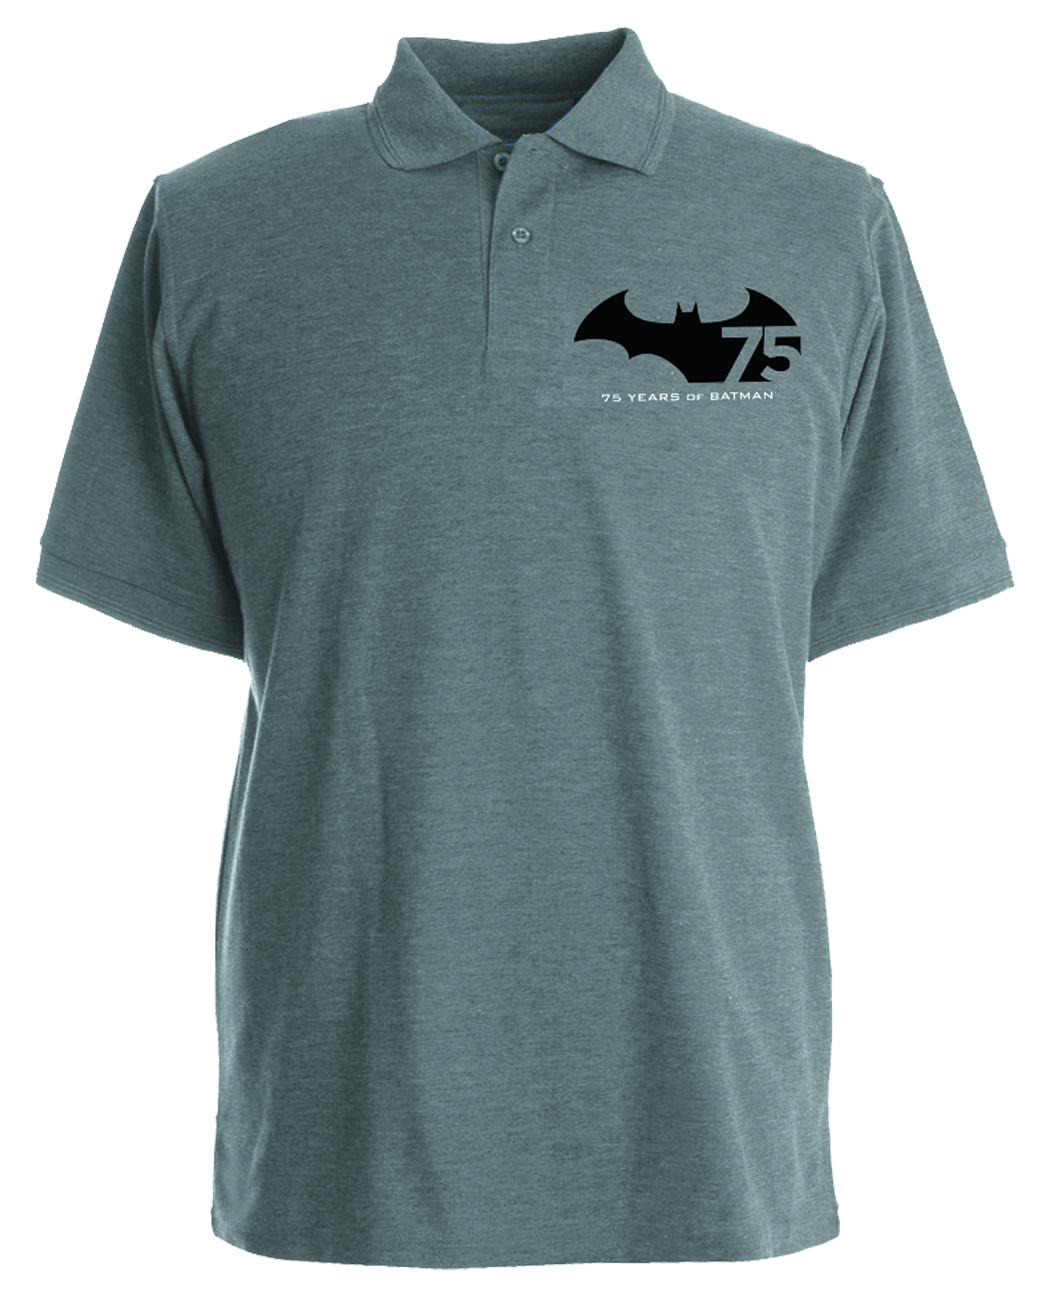 BATMAN 75TH ANNIVERSARY POLO XL